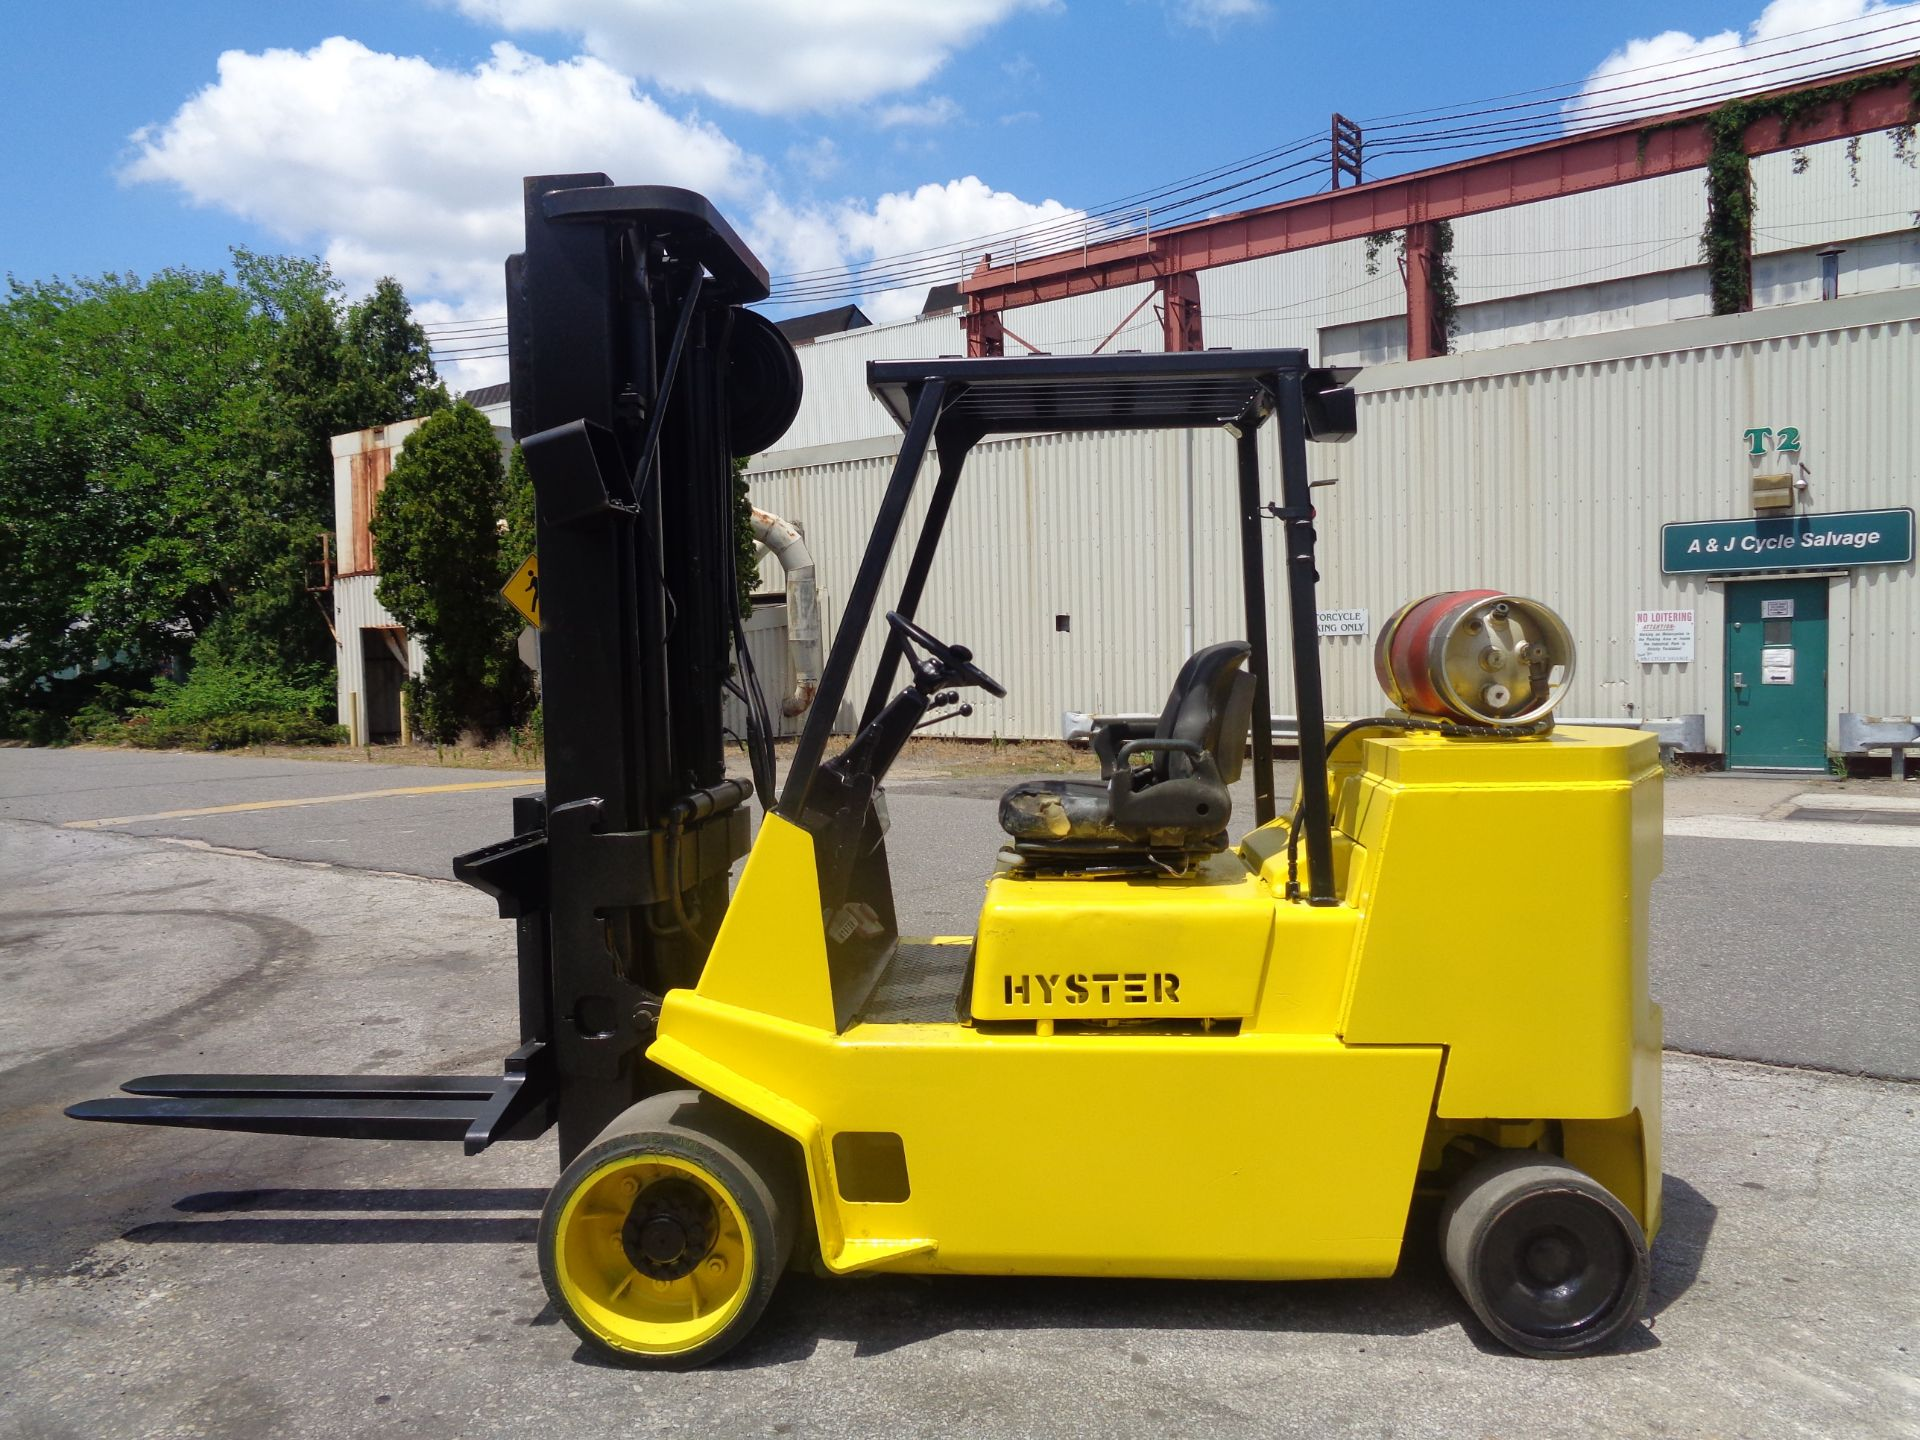 Hyster S120XL 12,000lb Forklift - Image 5 of 14